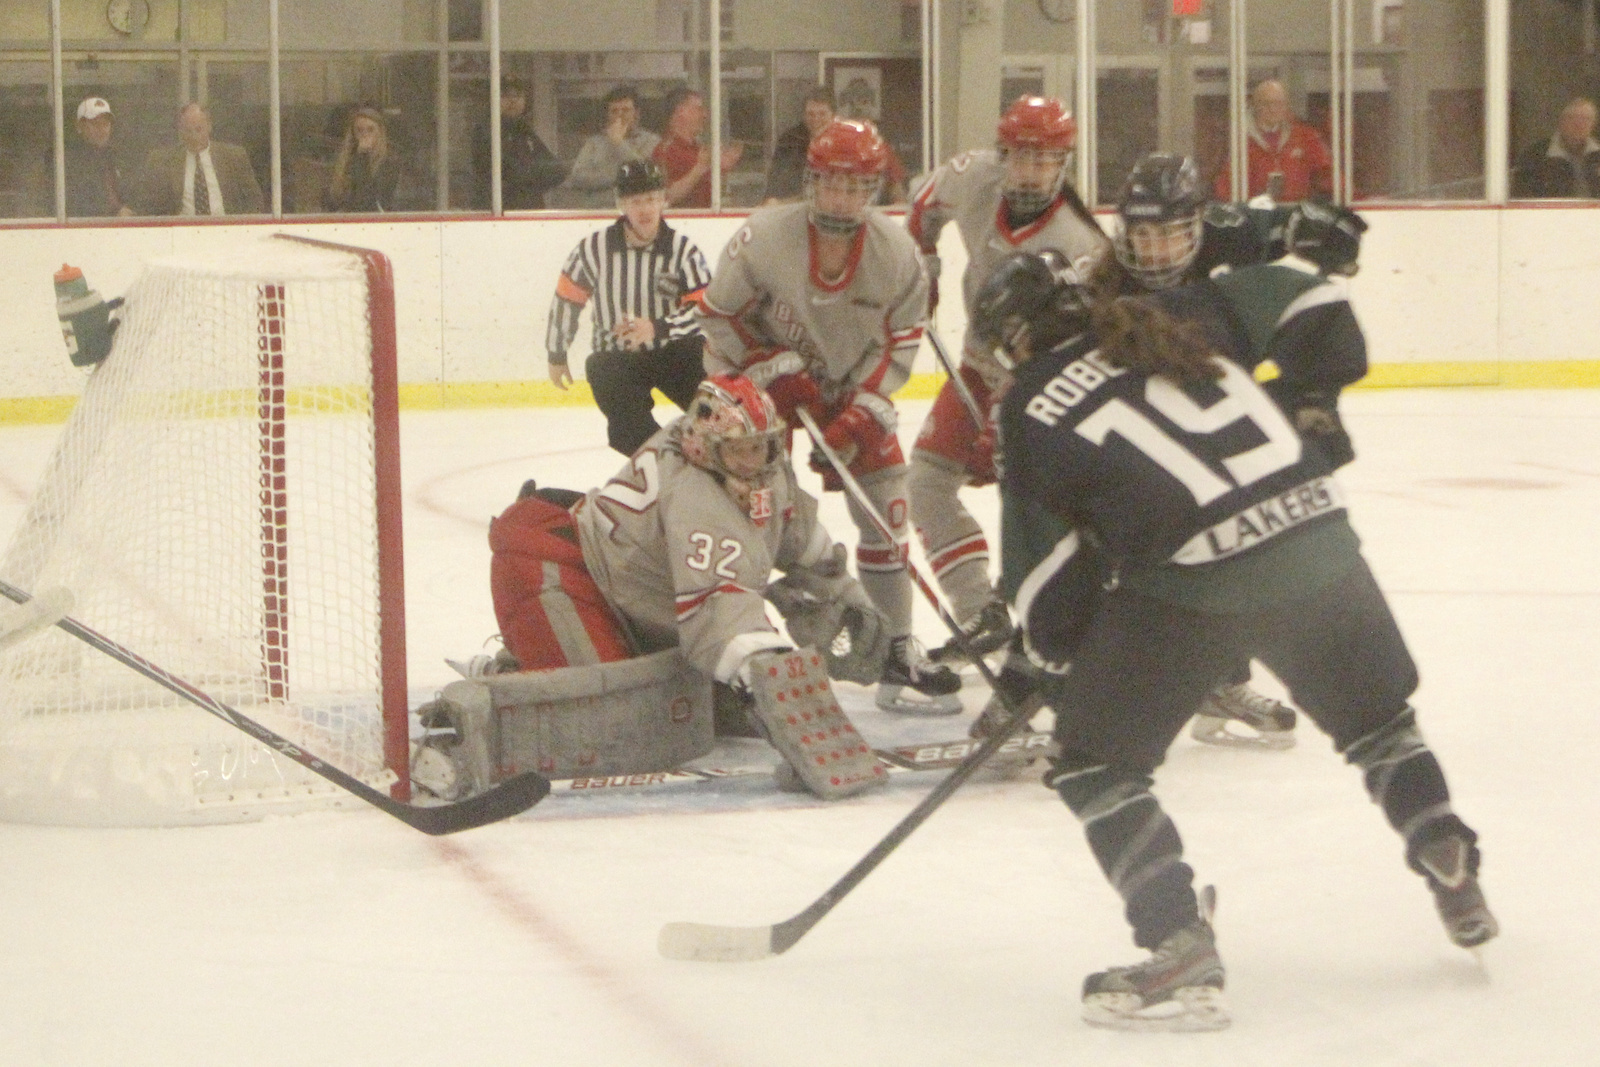 Freshman goaltender Kassidy Sauve (32) defends the net during a game against Mercyhurst on Nov. 11 at the OSU Ice Rink. OSU lost, 3-0. Credit: Jon McAllister / Asst. photo editor